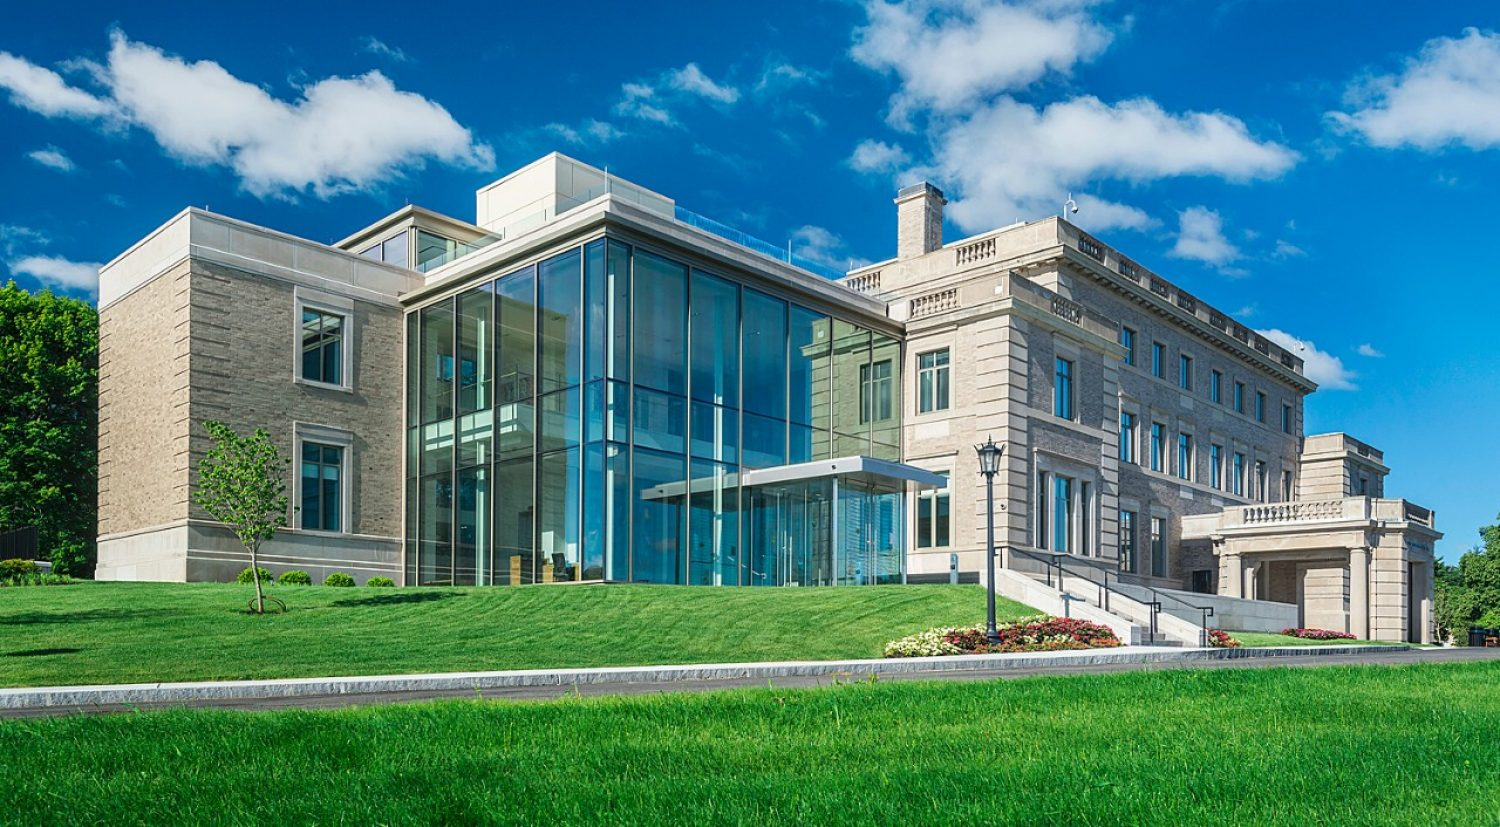 The McMullen Museum of Art at Boston College